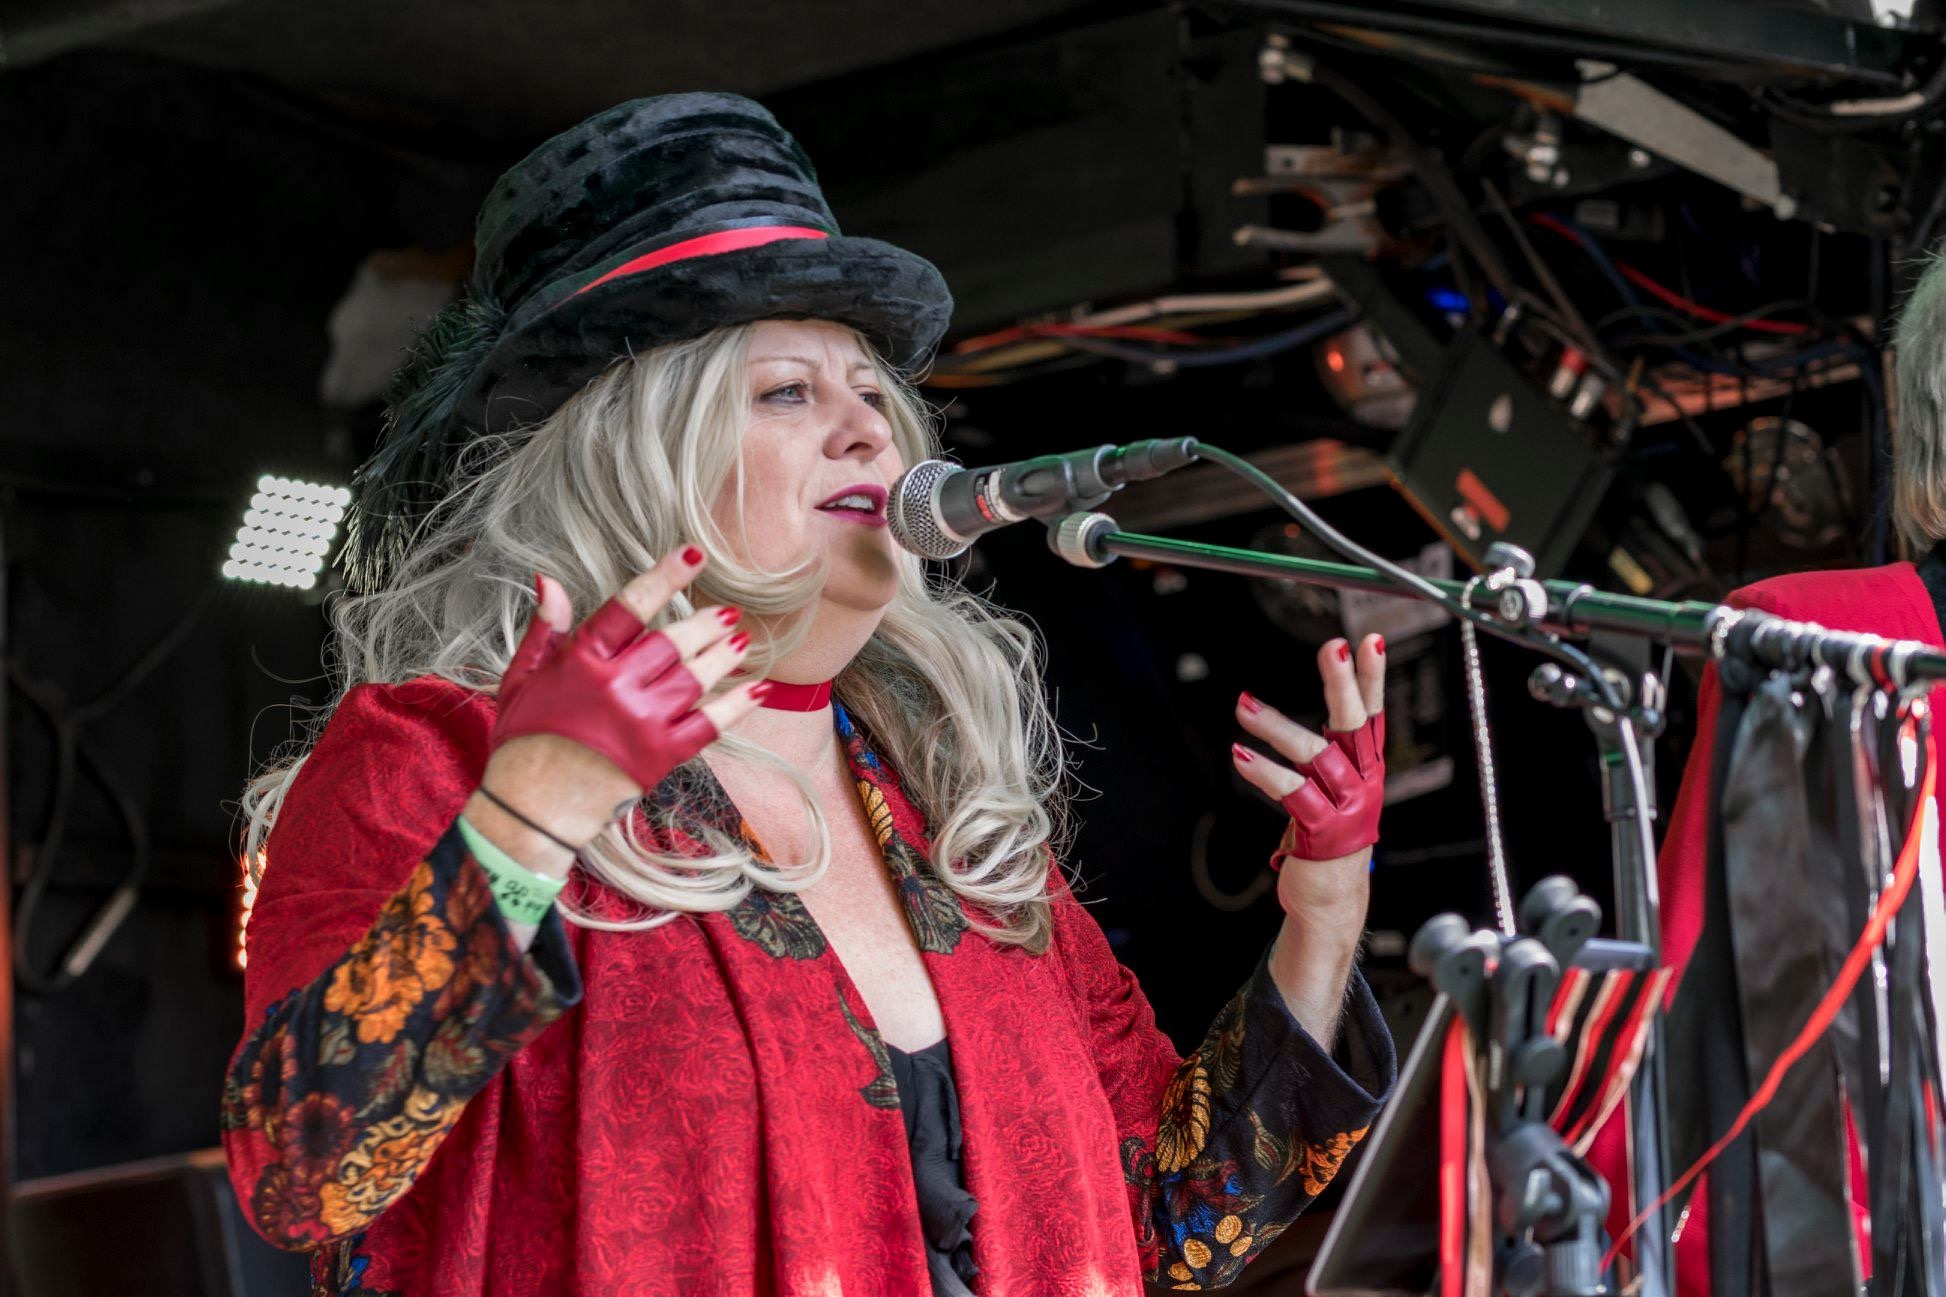 Paula as Stevie Nicks